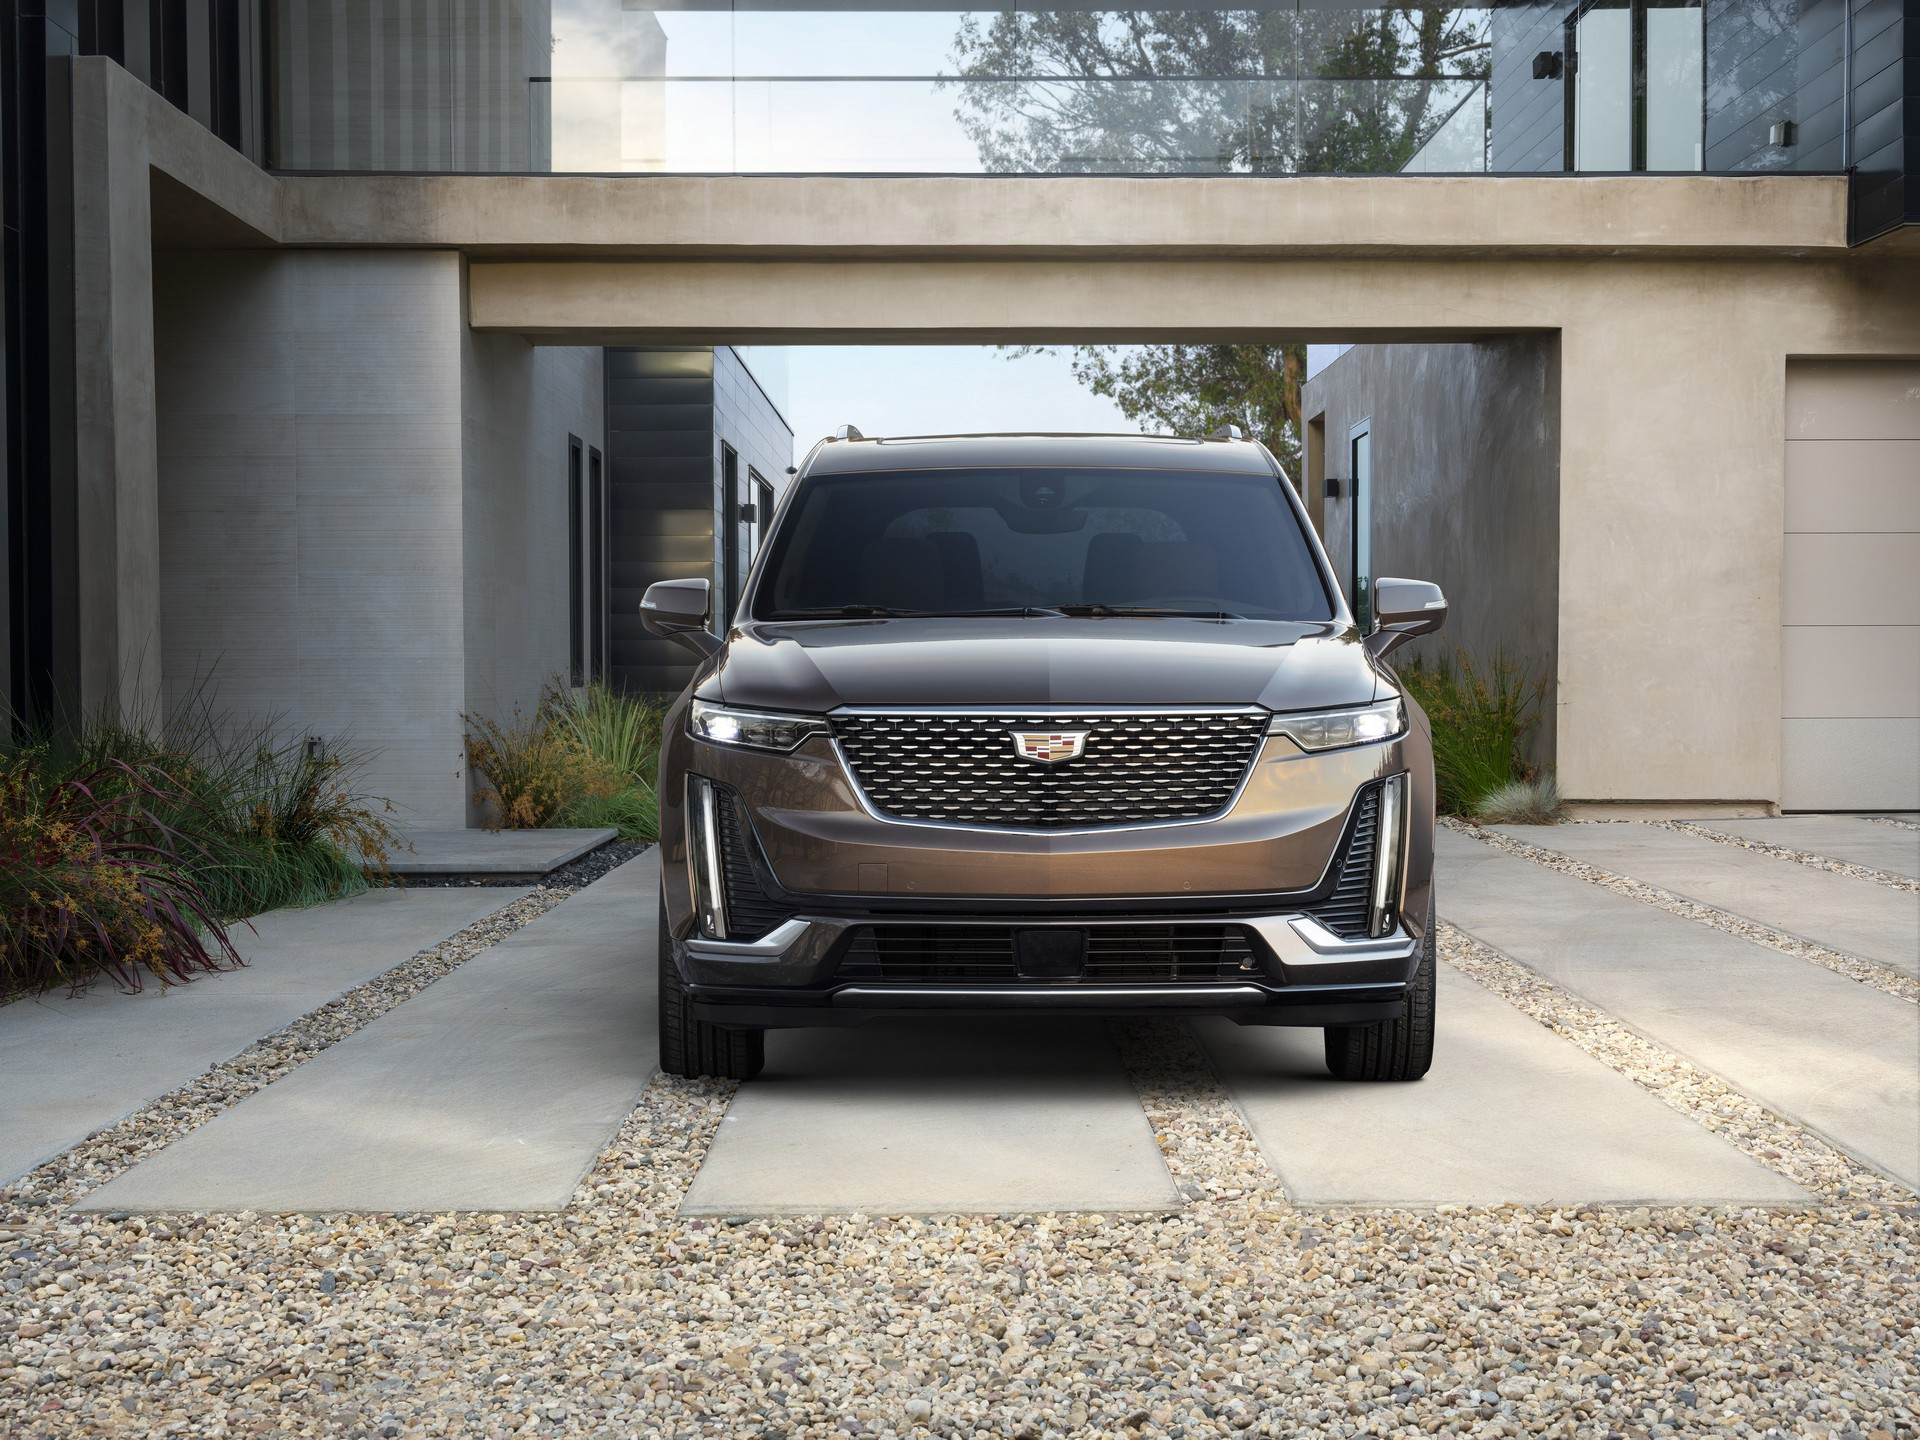 Cadillac Releases a Teaser of Its First Full Electric Vehicle